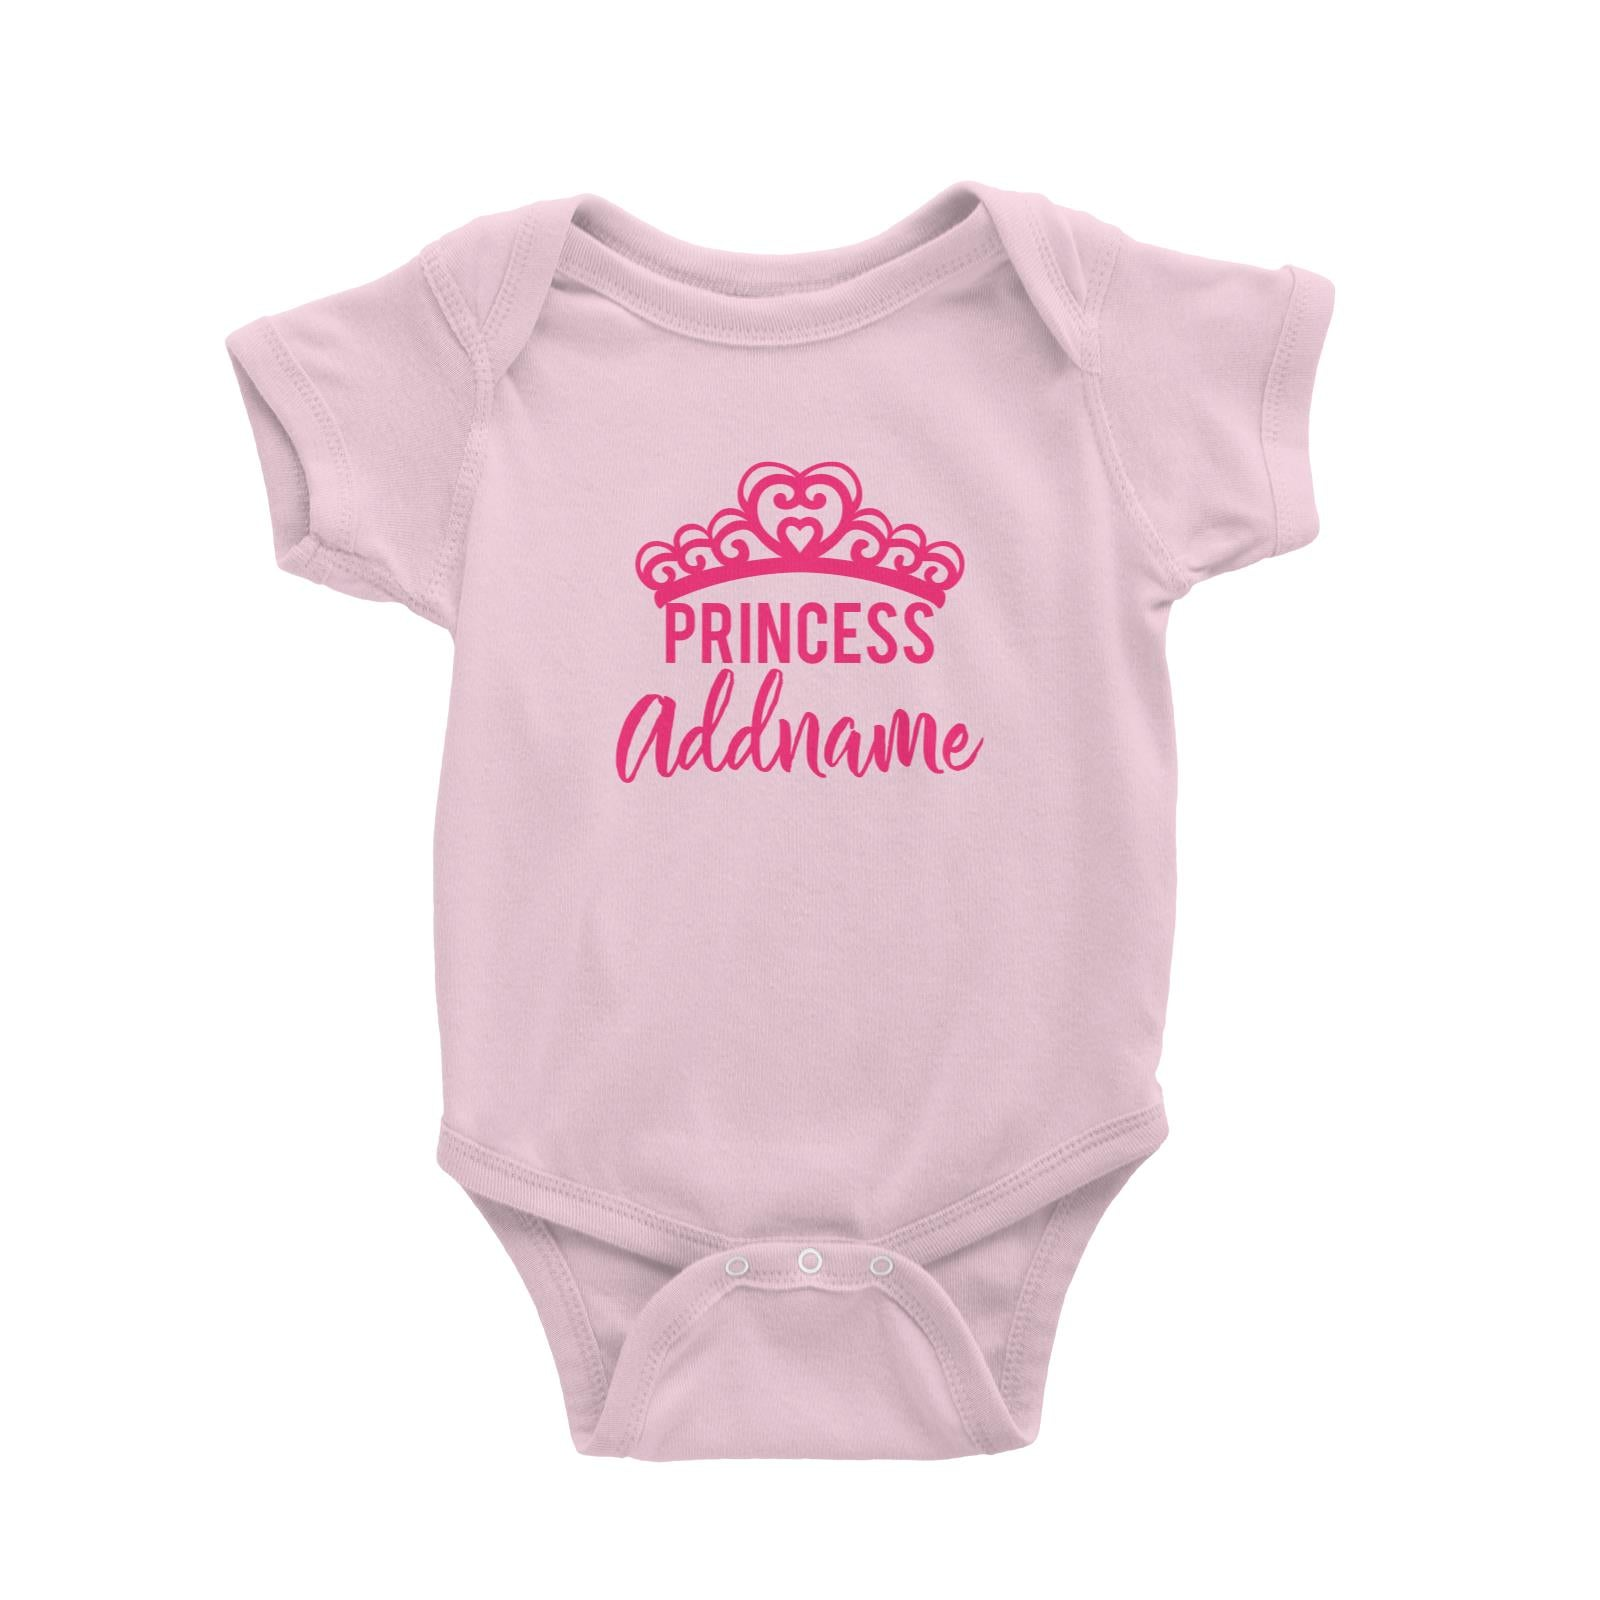 Babywears.my Prince Addname with Crown T-Shirt  Personalizable Designs